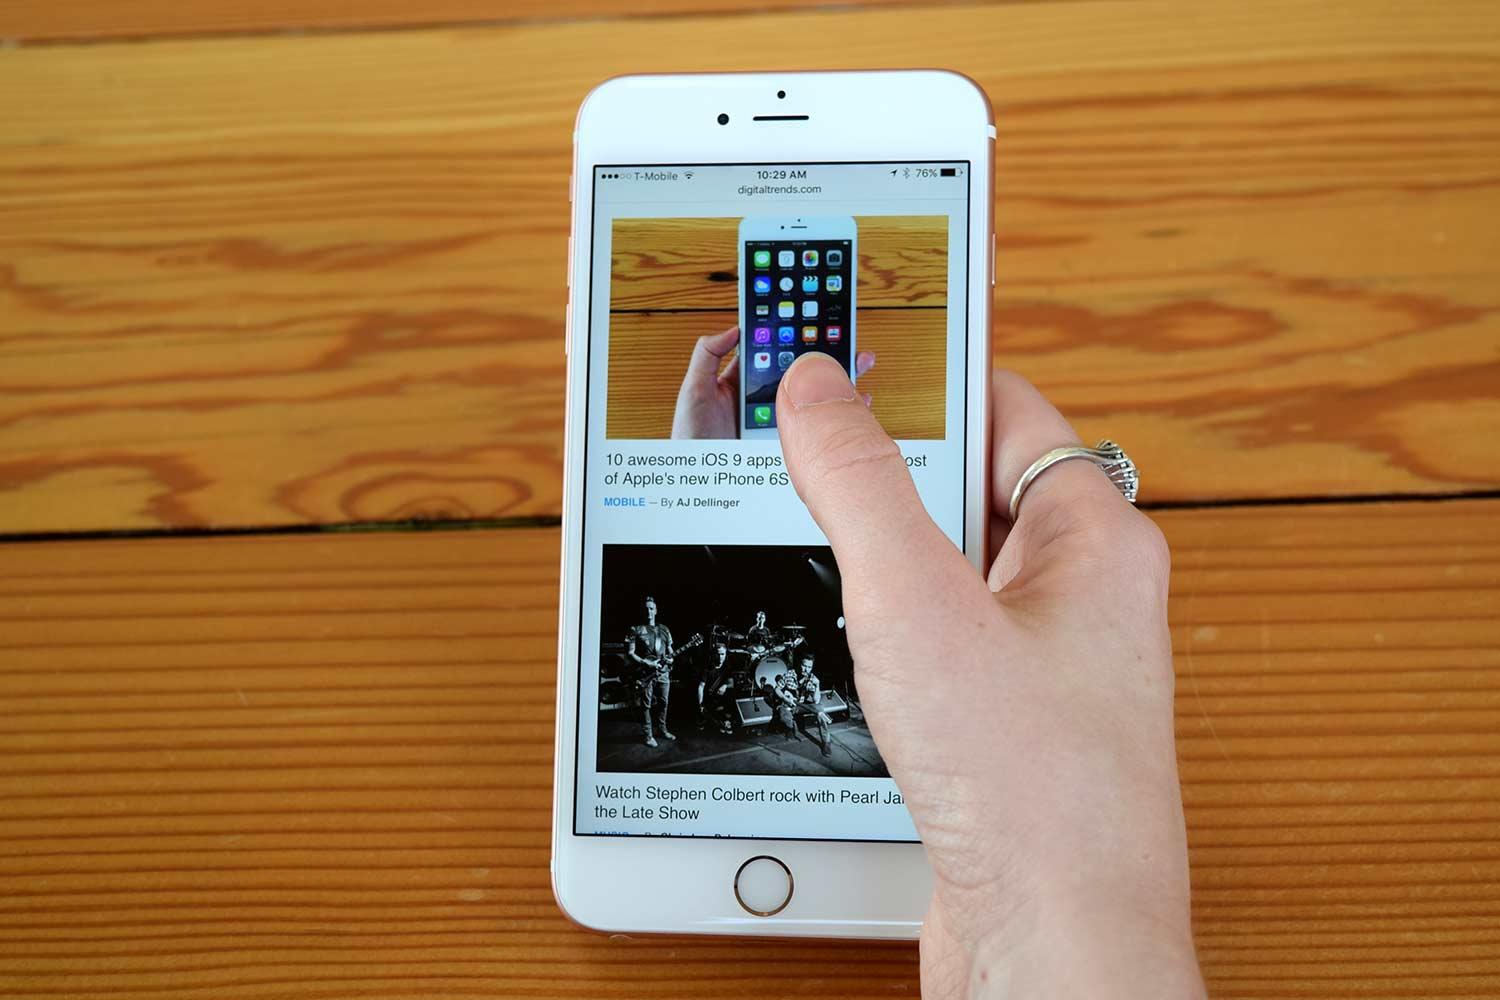 What are some troubleshooting tips for the Apple iPhone?